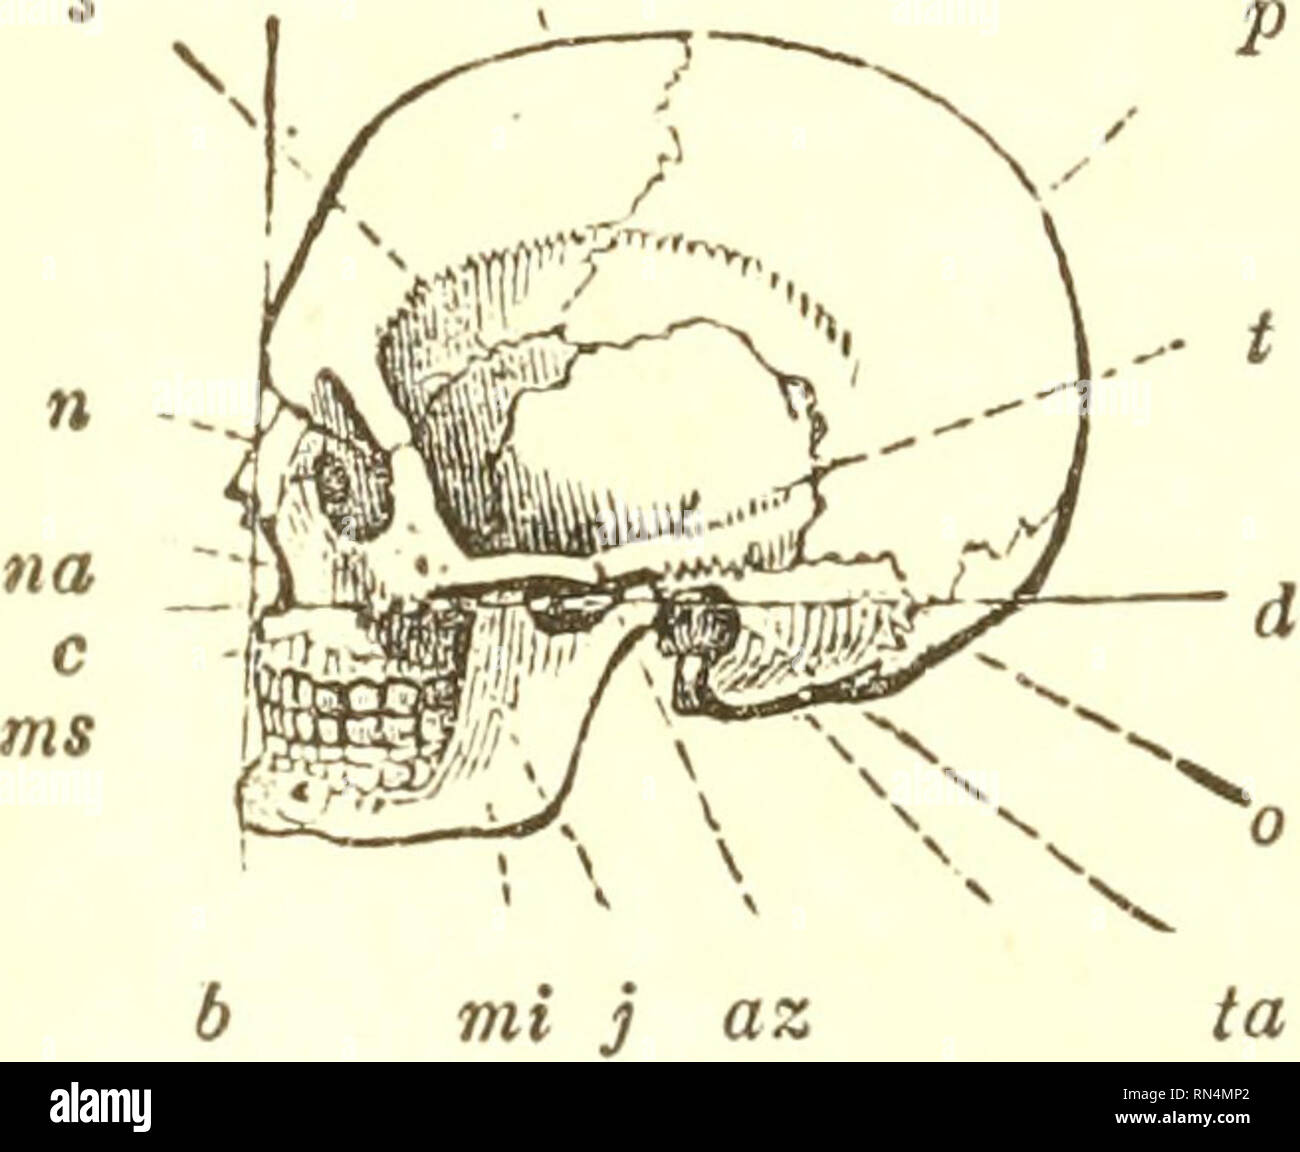 hight resolution of 464 bones of the skull 3fotor apparatus of man skeleto7i and muscles 616 before entering upon the examination of the various movements of the lower